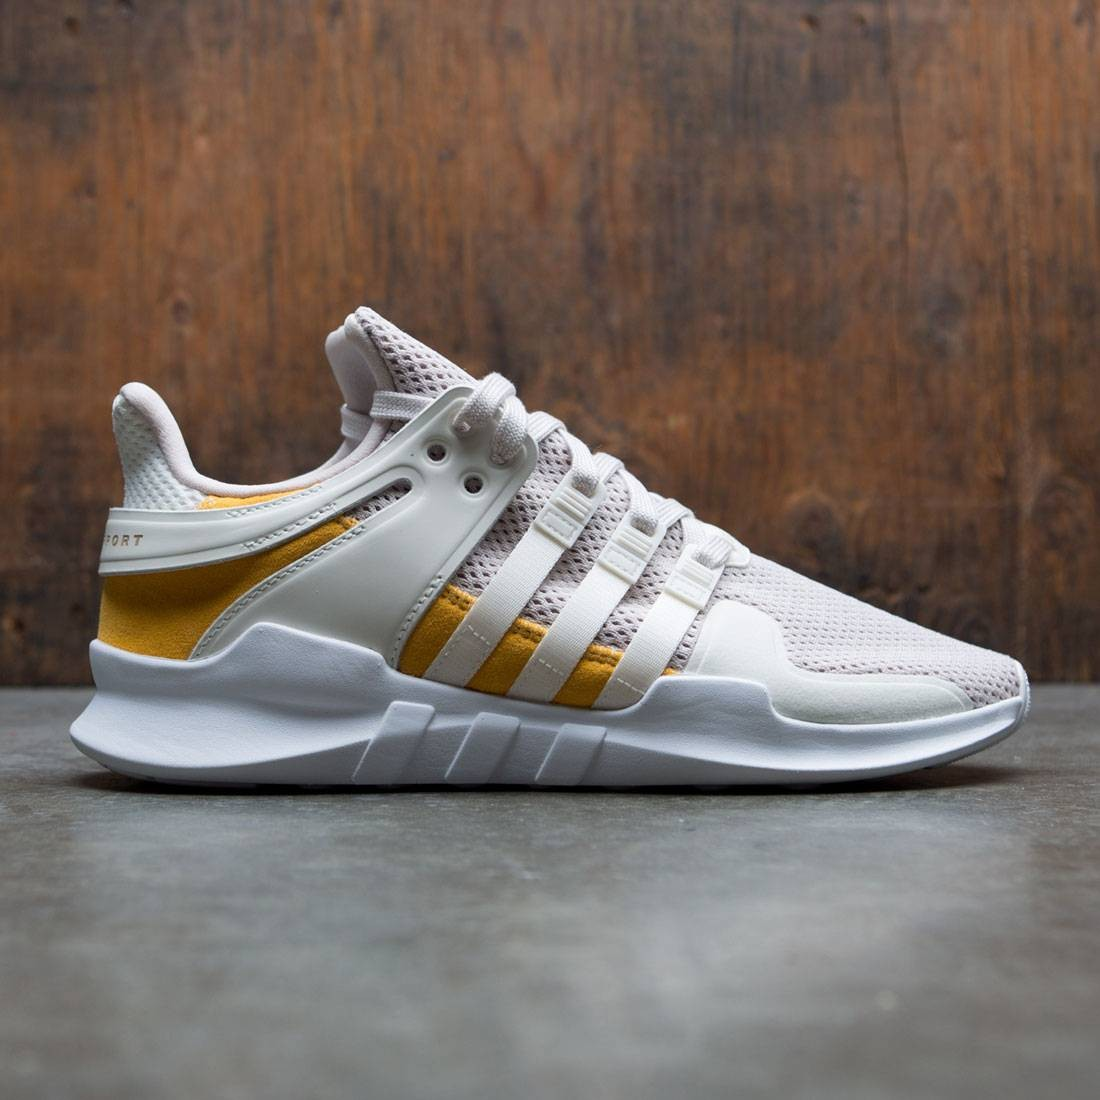 reputable site b7cc2 9f85d Adidas Men Equipment Support ADV white off white clear brown trace yellow